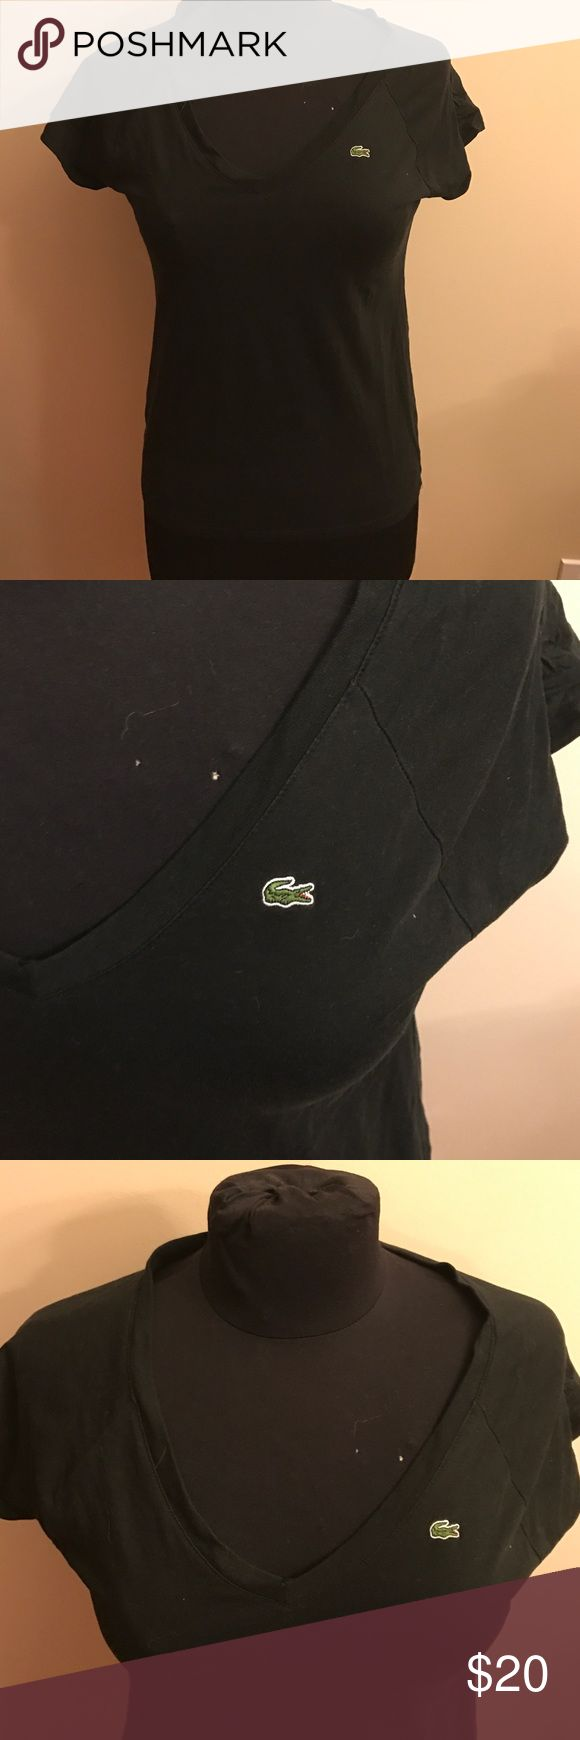 Lacoste V-neck tee Black V-neck tee shirt. Size 36 which is equivalent to a size 4. Lacoste Tops Tees - Long Sleeve